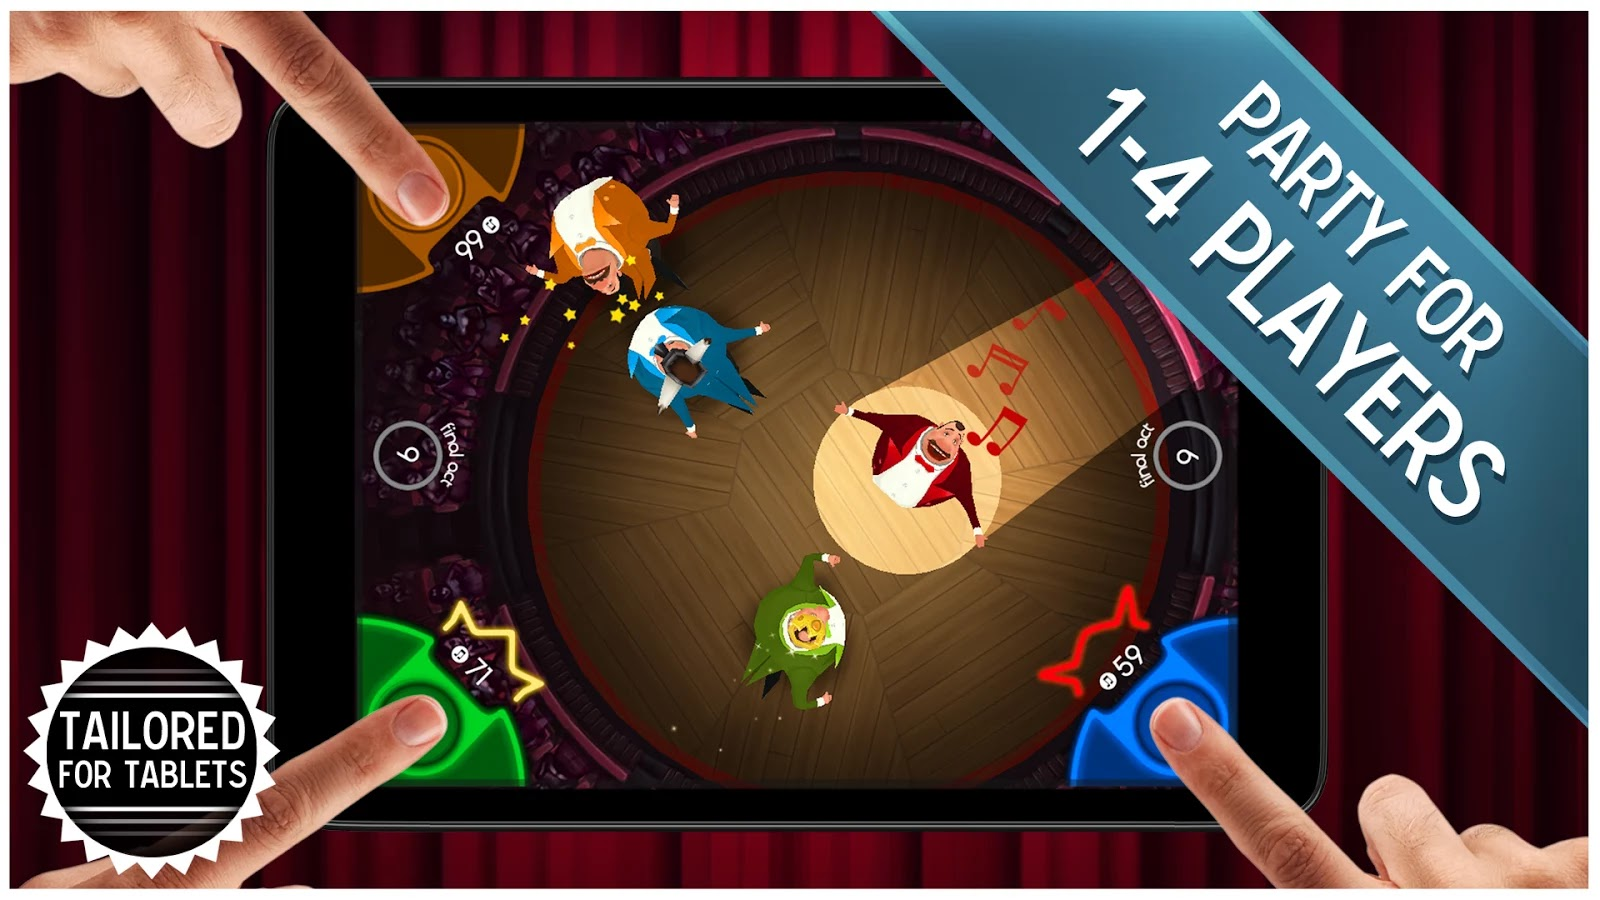 King of Opera - Party Game! v1.14.17 [Full]